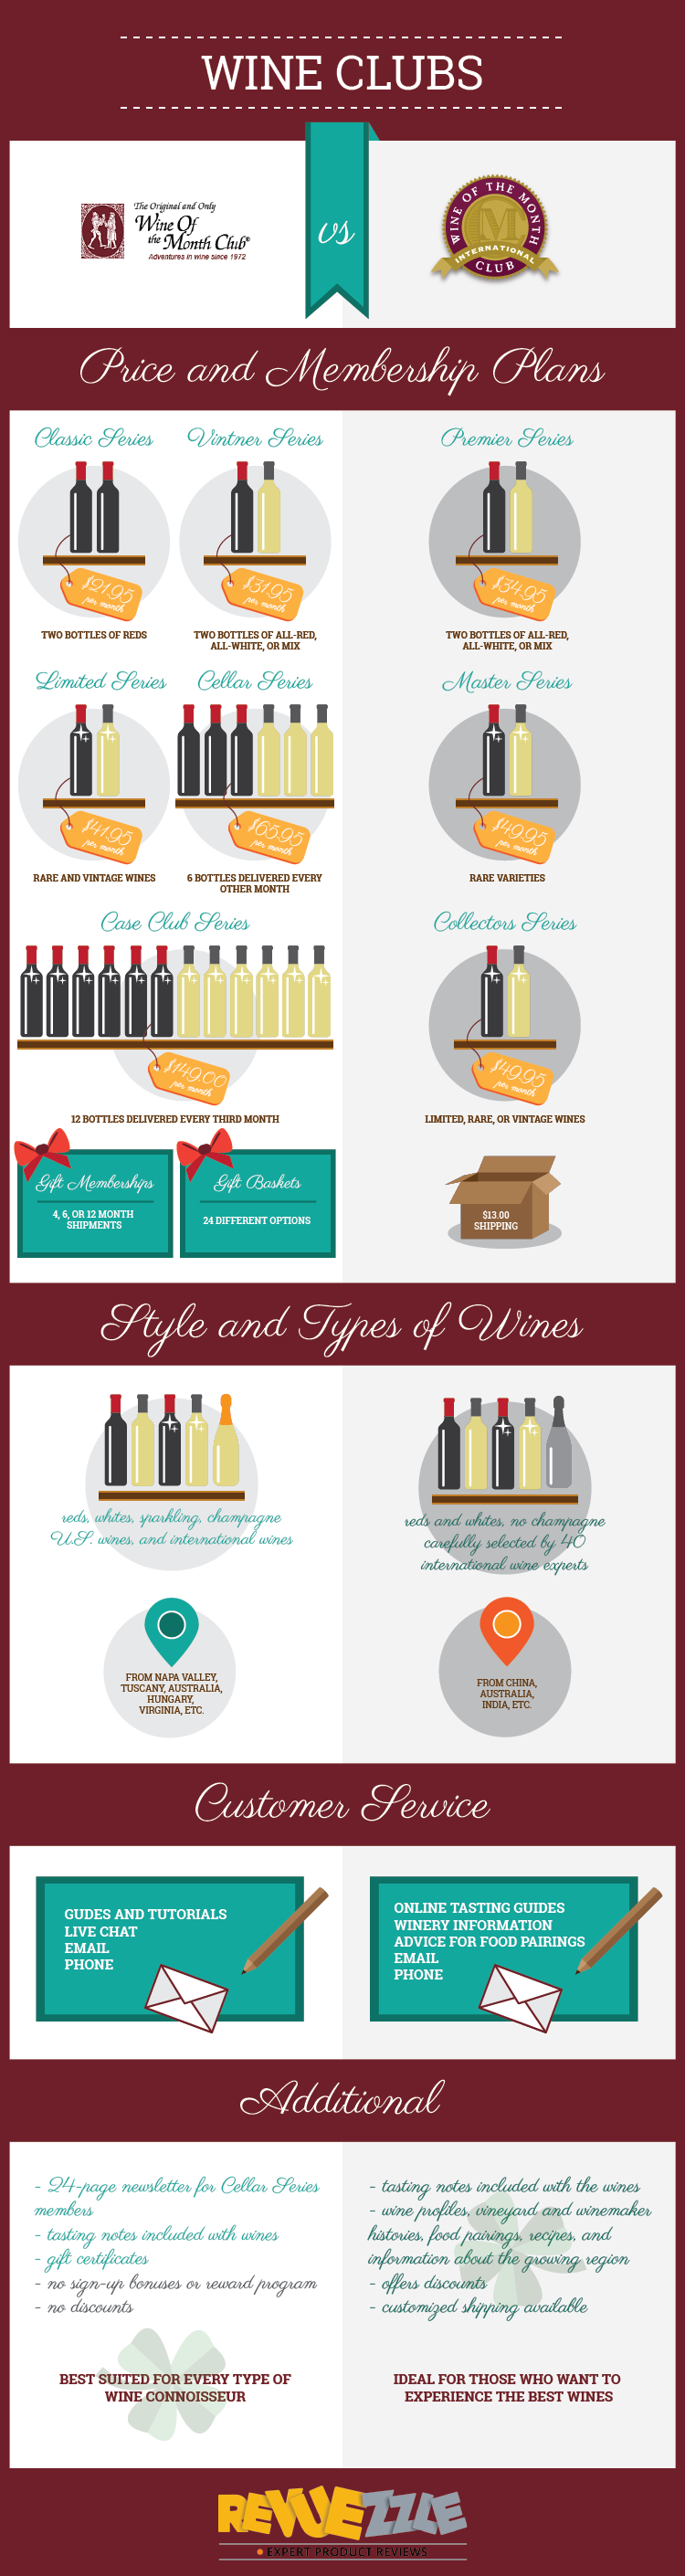 Wine of the Month Club vs. International Wine of the Month Club Detailed one on one comparisions. #wine #vino #wineclubs  #infographic